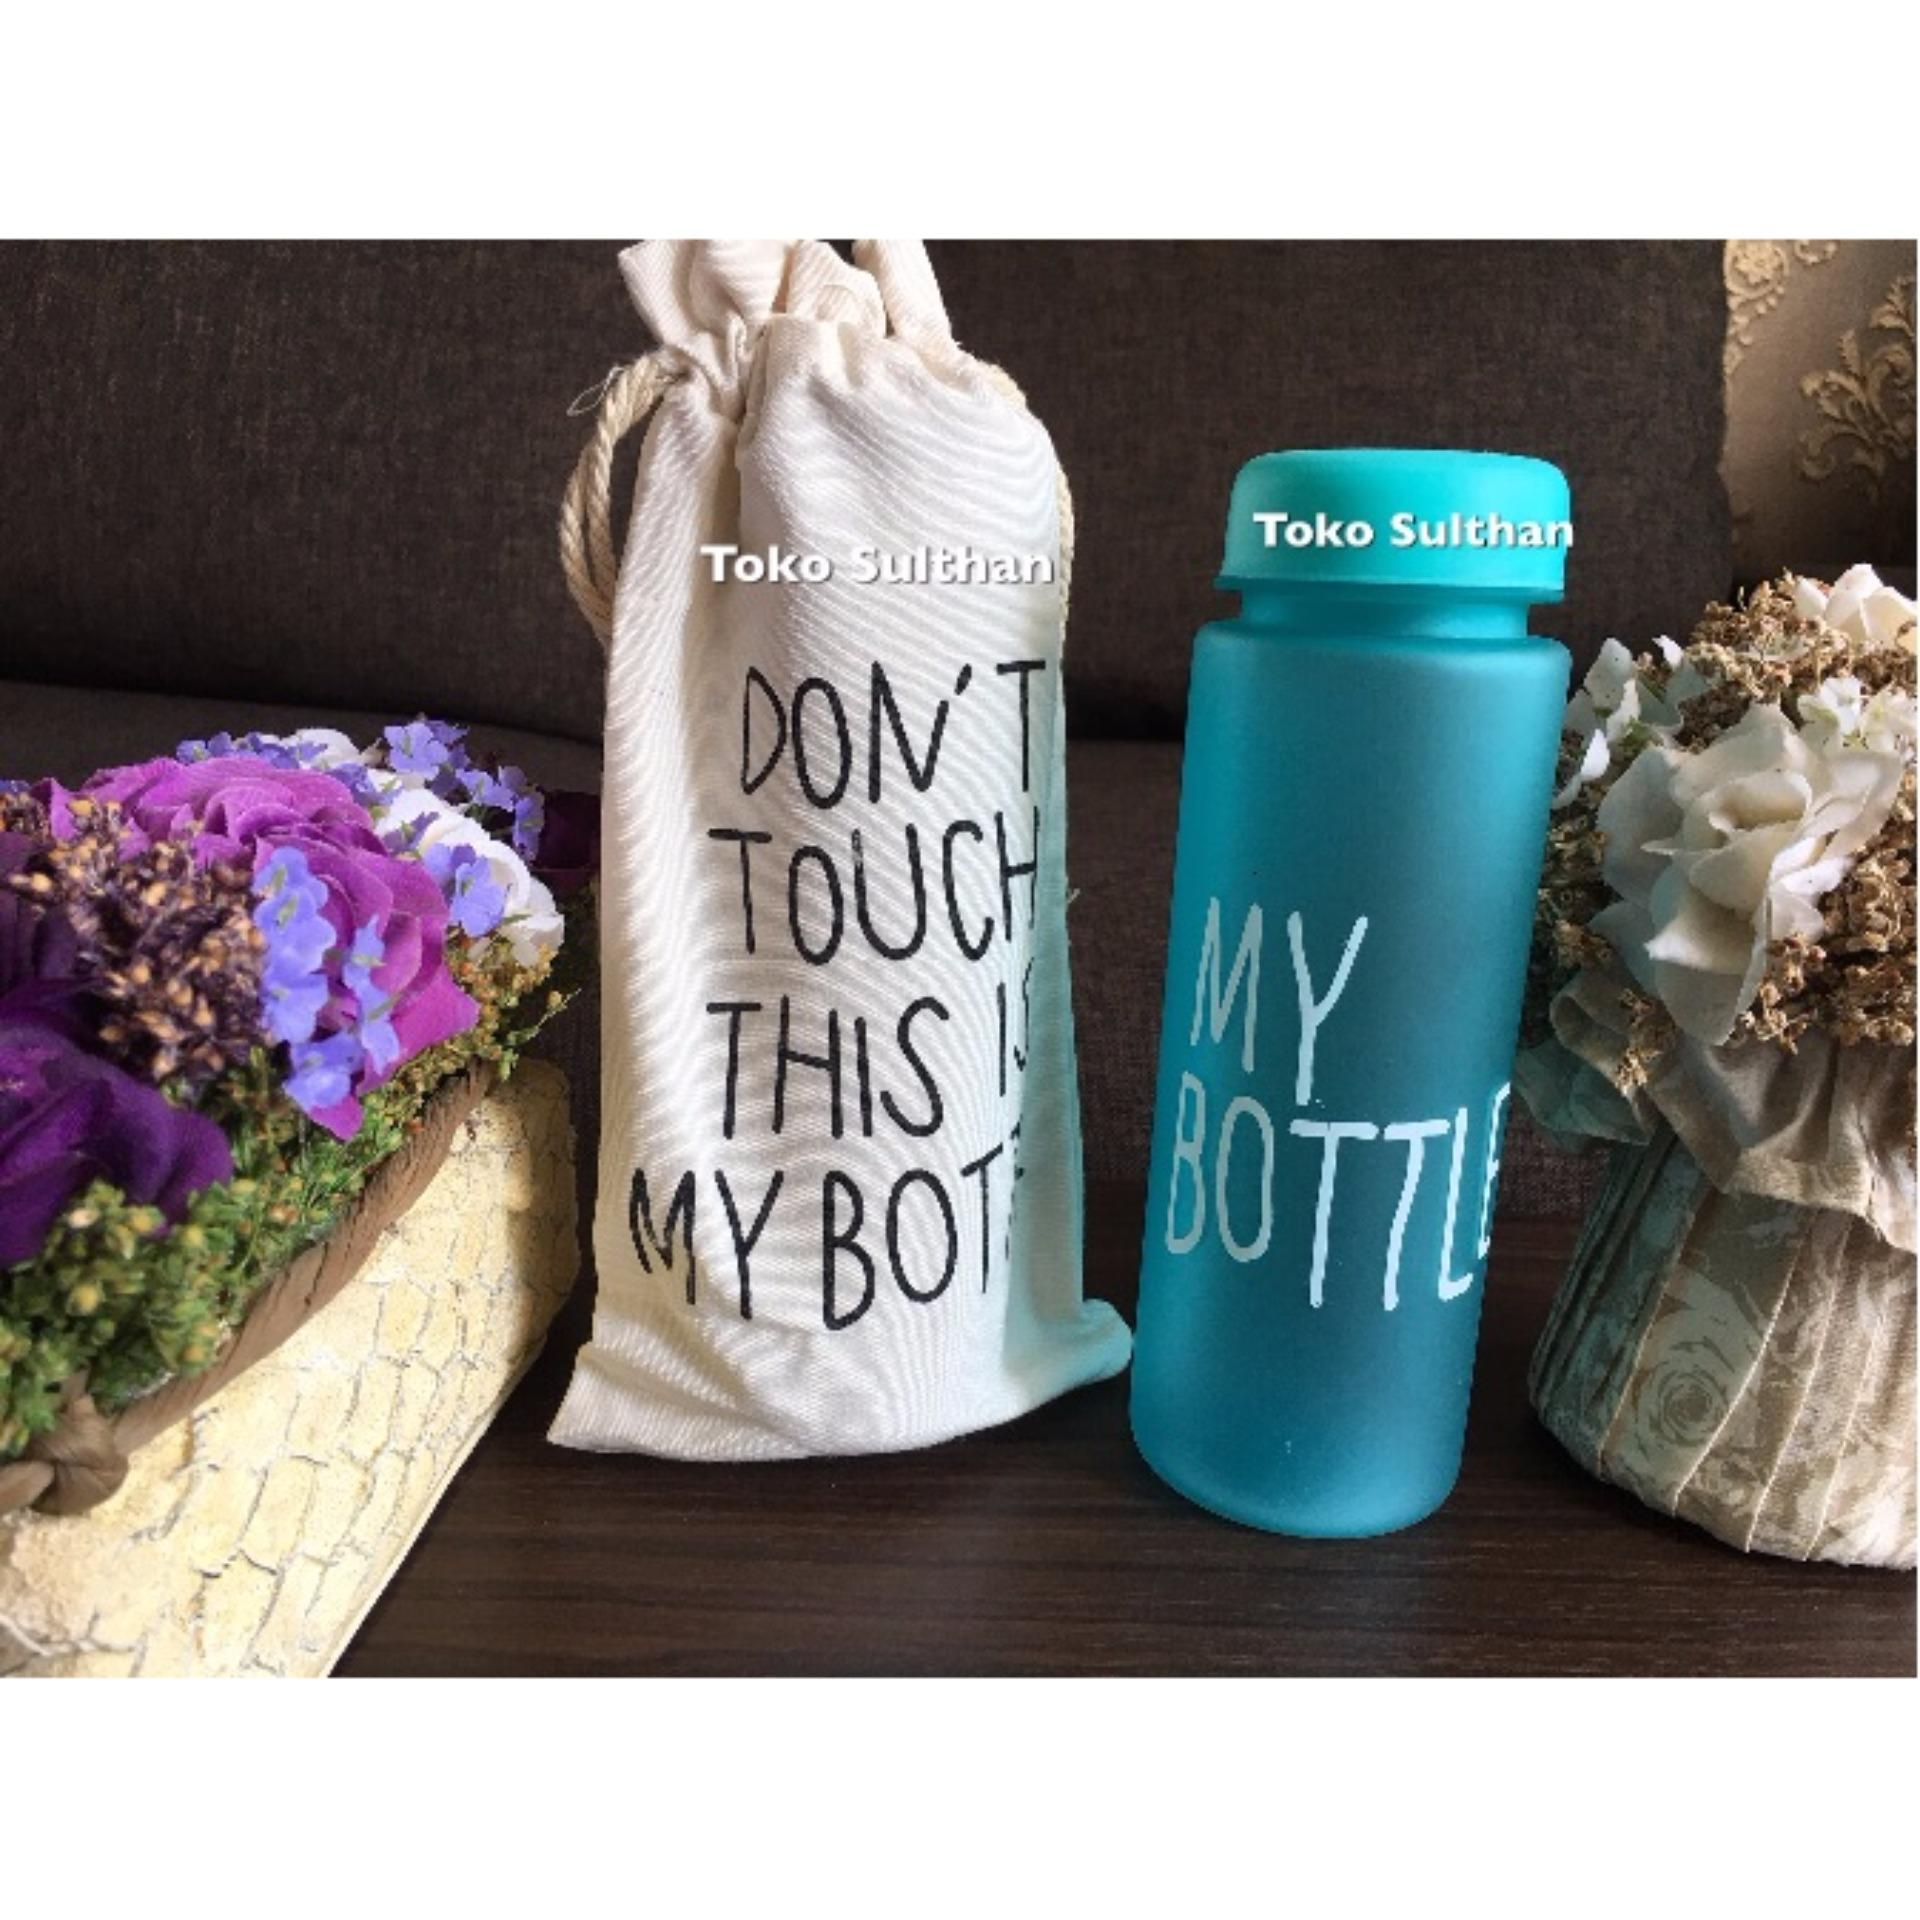 Jual Beli My Bottle New Doff Botol Warna Warni 500ml Biru Plus Tas